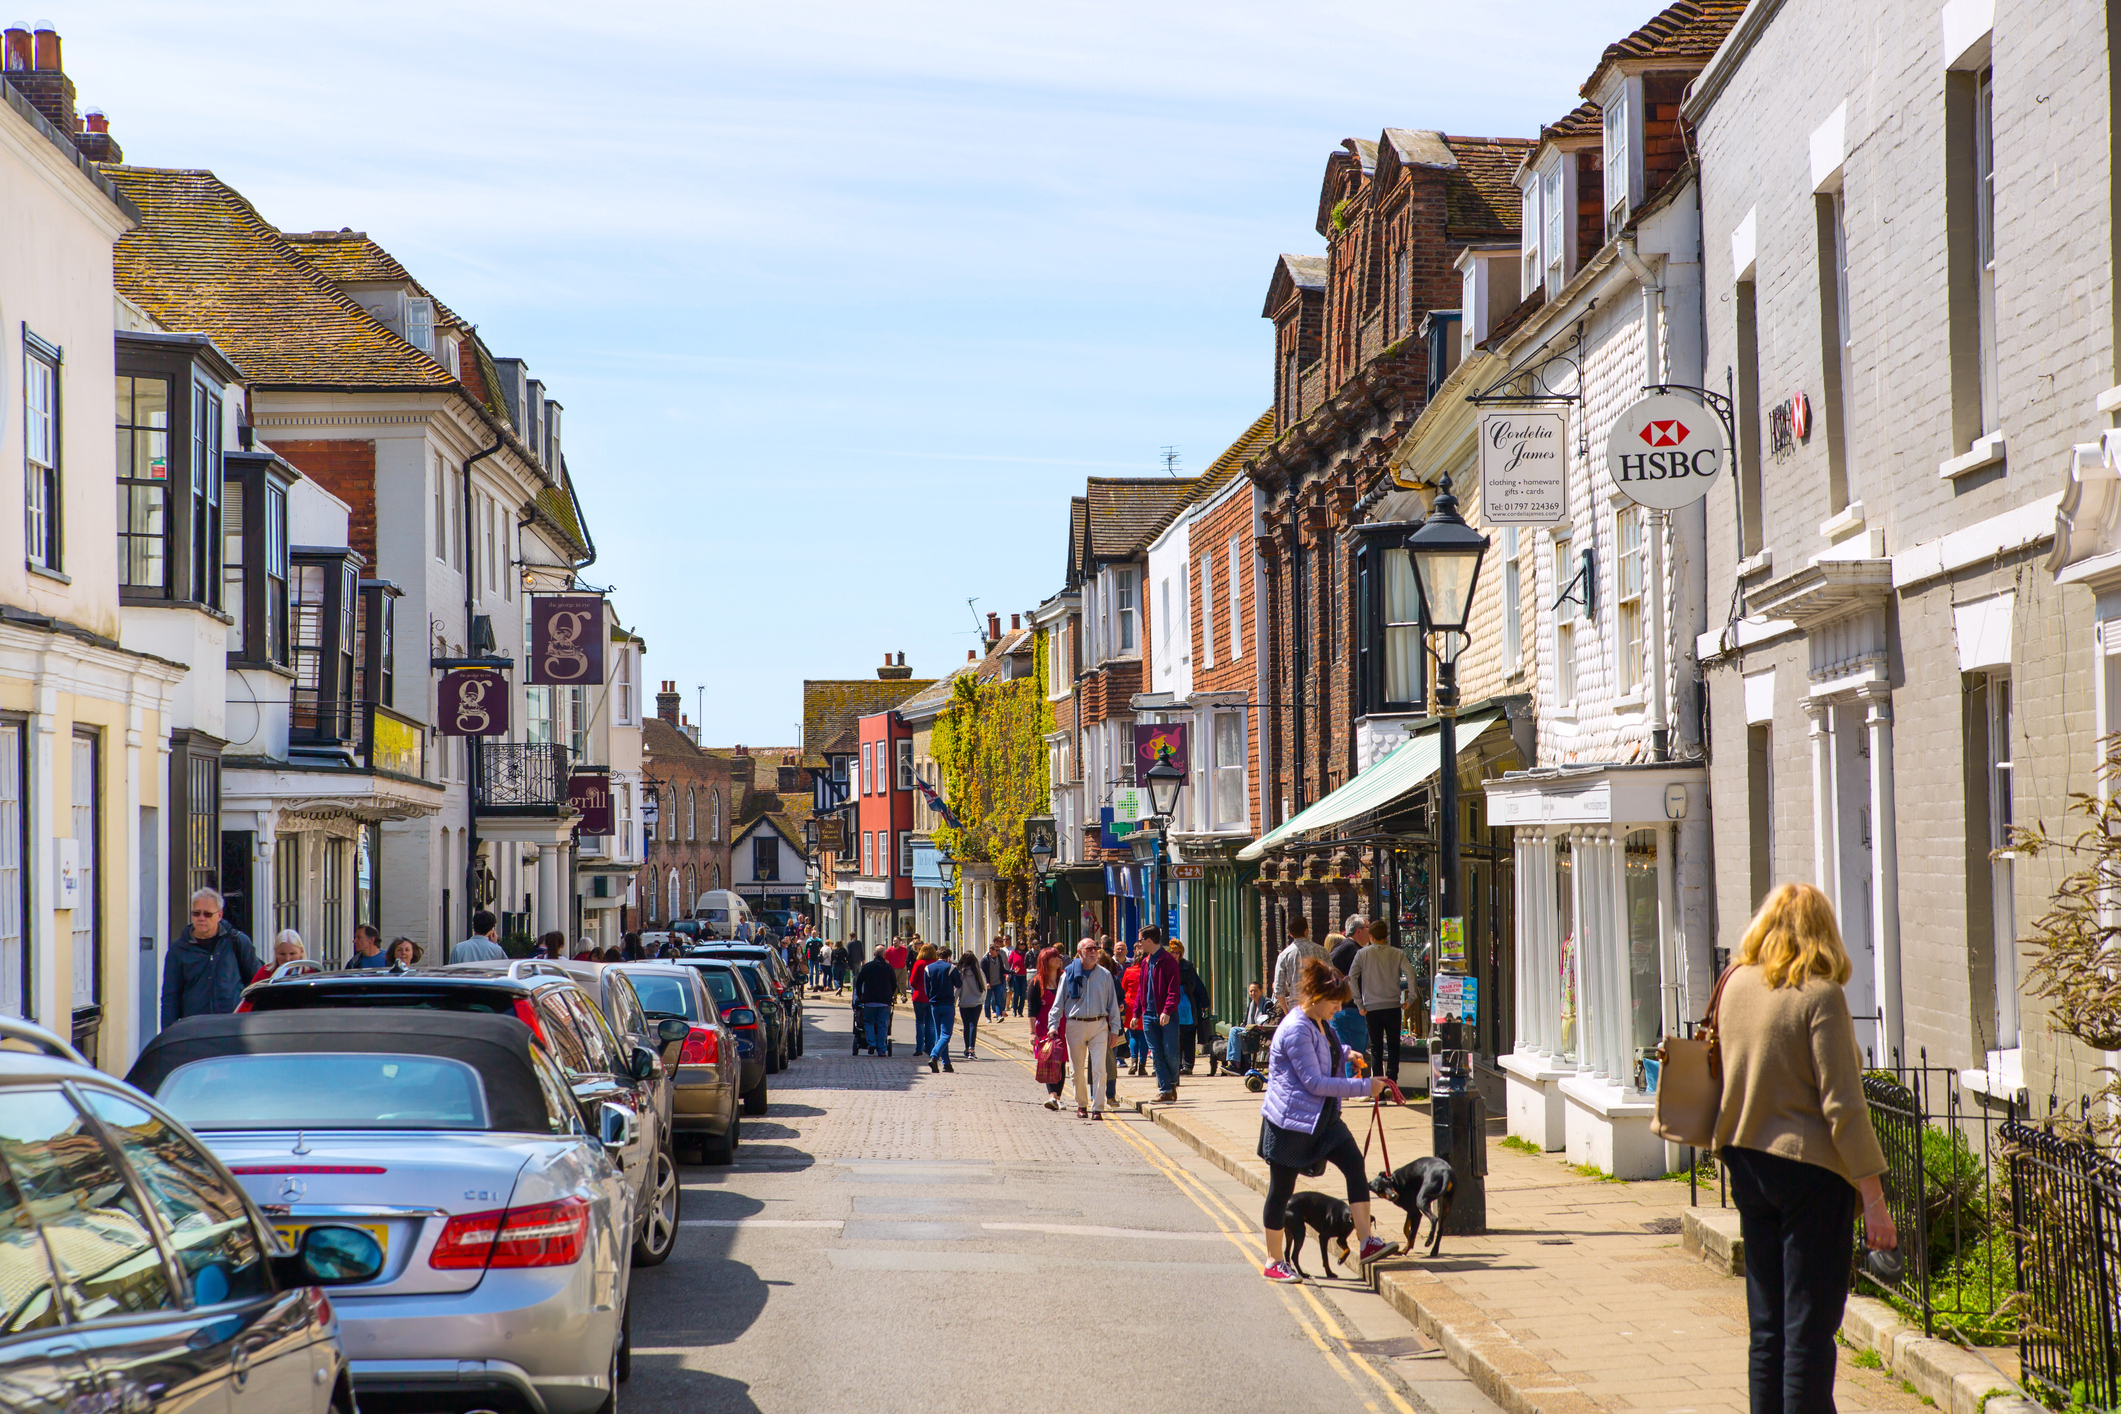 Old street of Rye town (Getty Images)